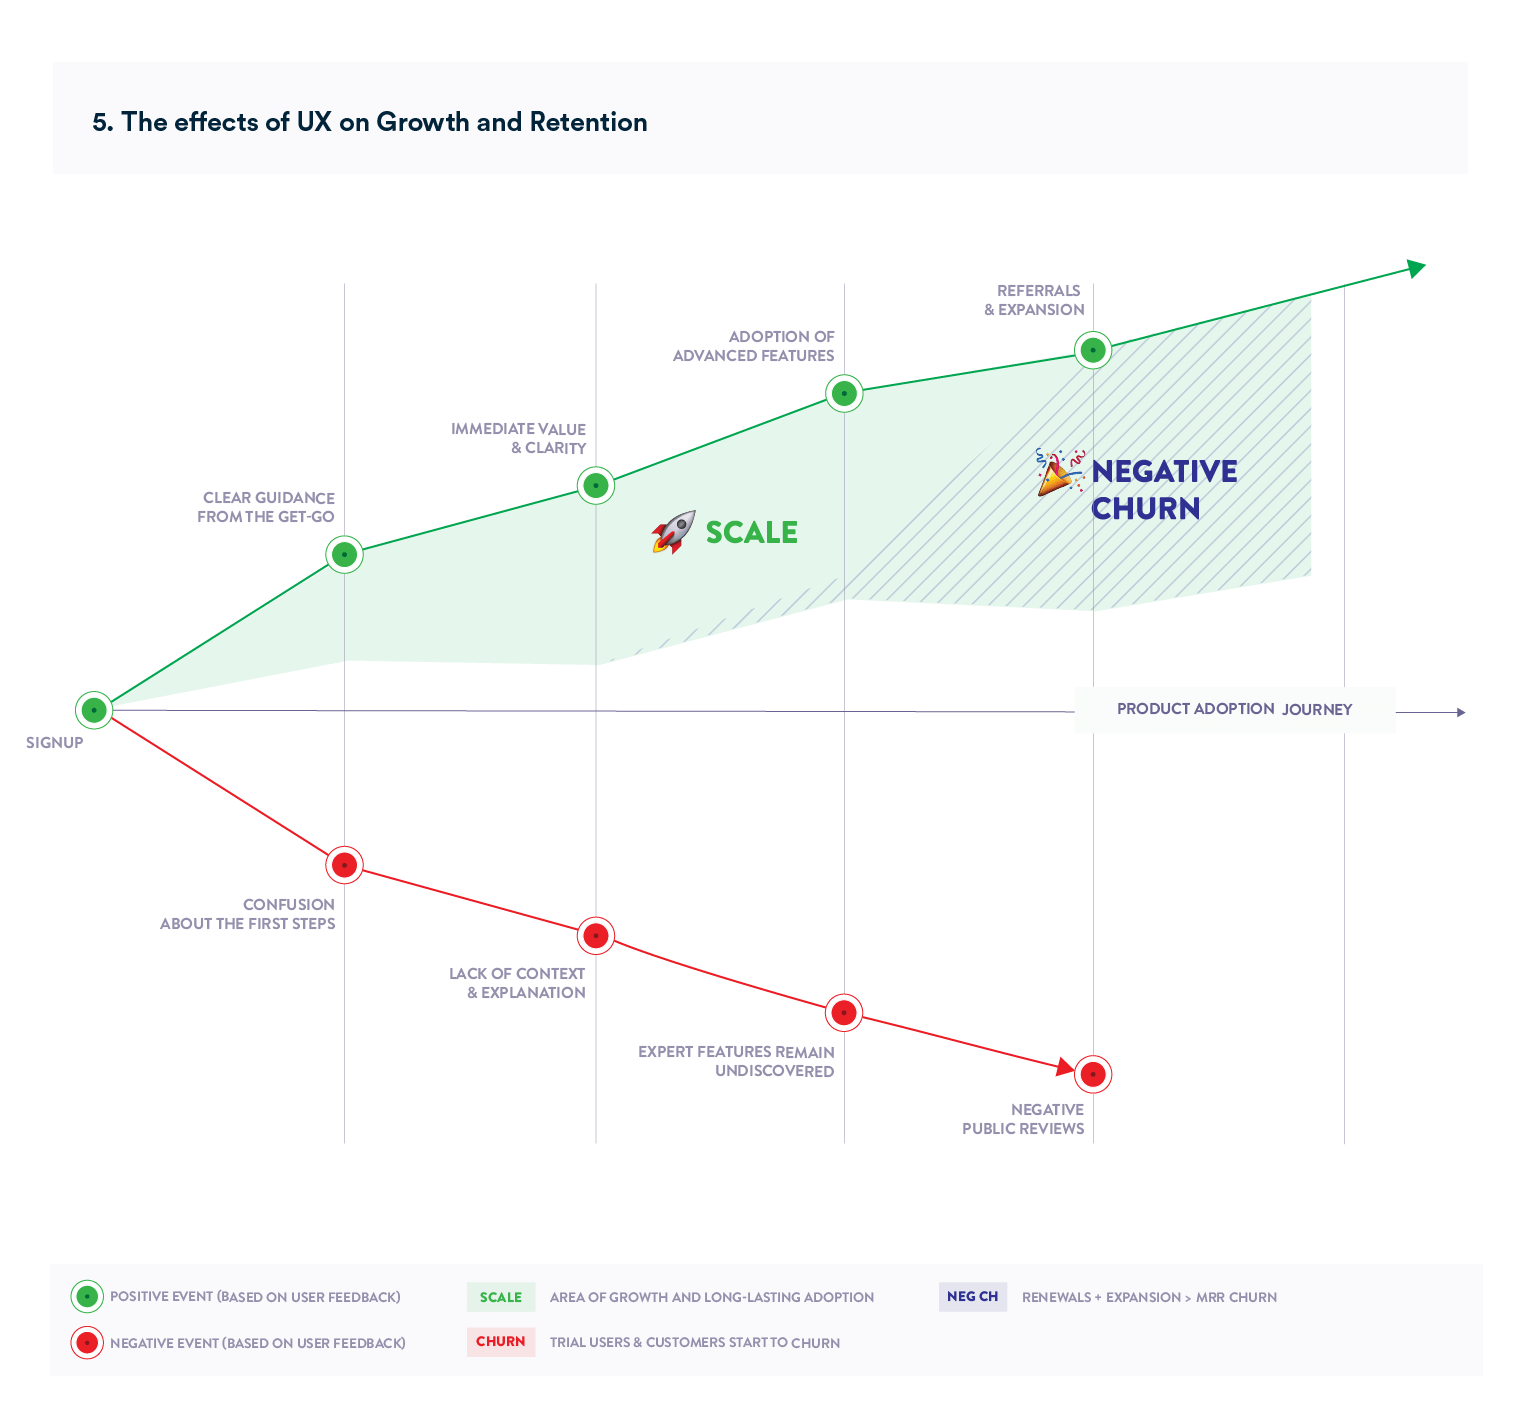 Chart depicting the effects of users experience on growth retention and product adoption